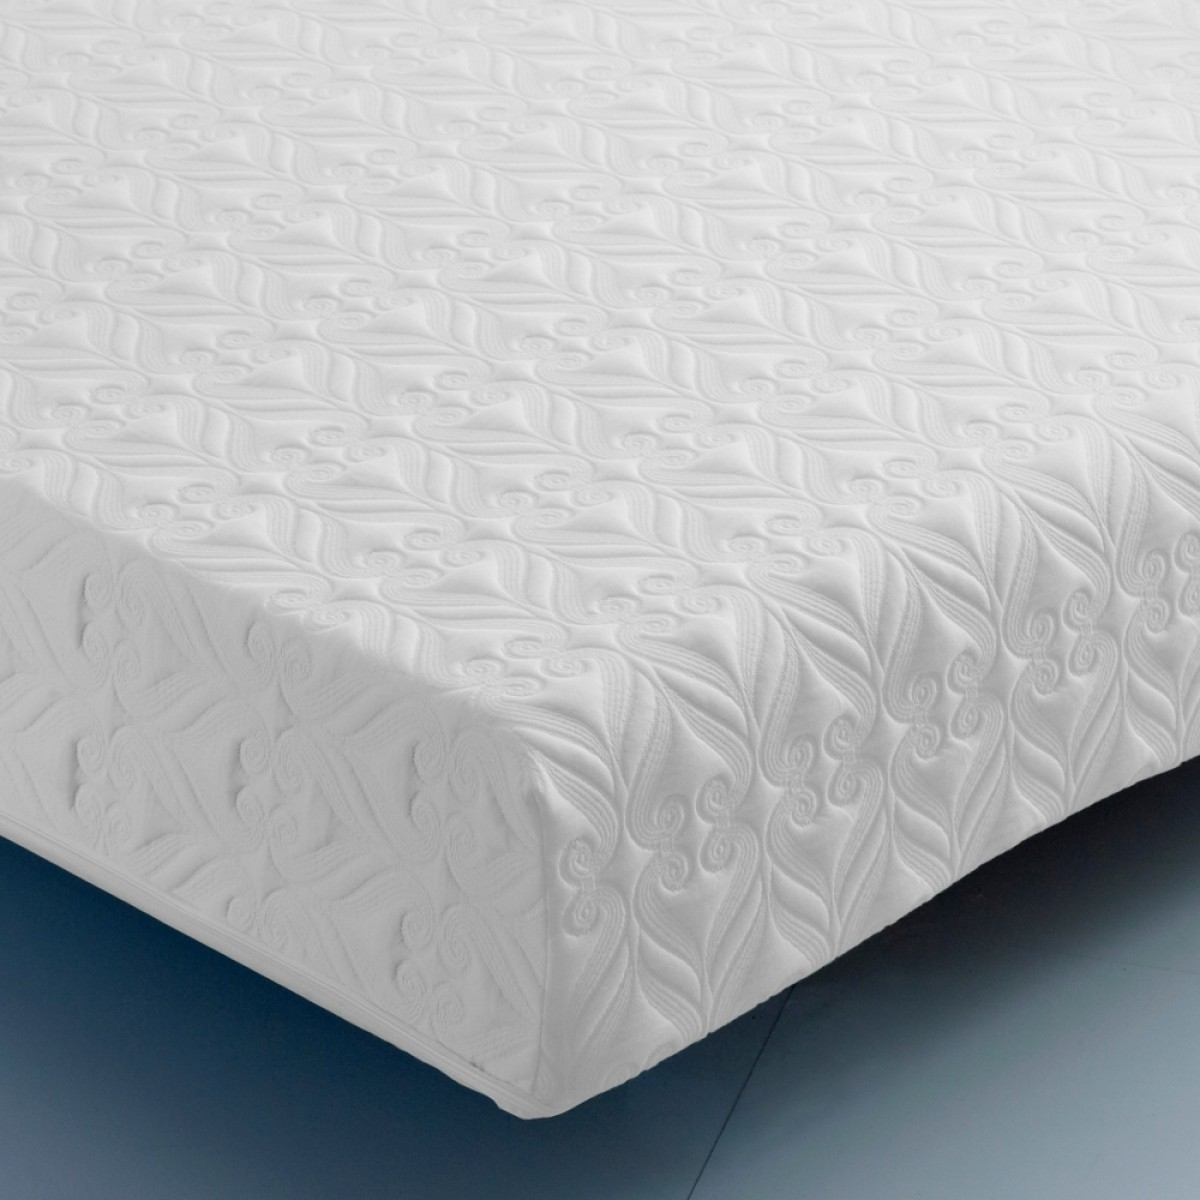 Laytech Fresh Latex and Reflex Foam Orthopaedic Mattress